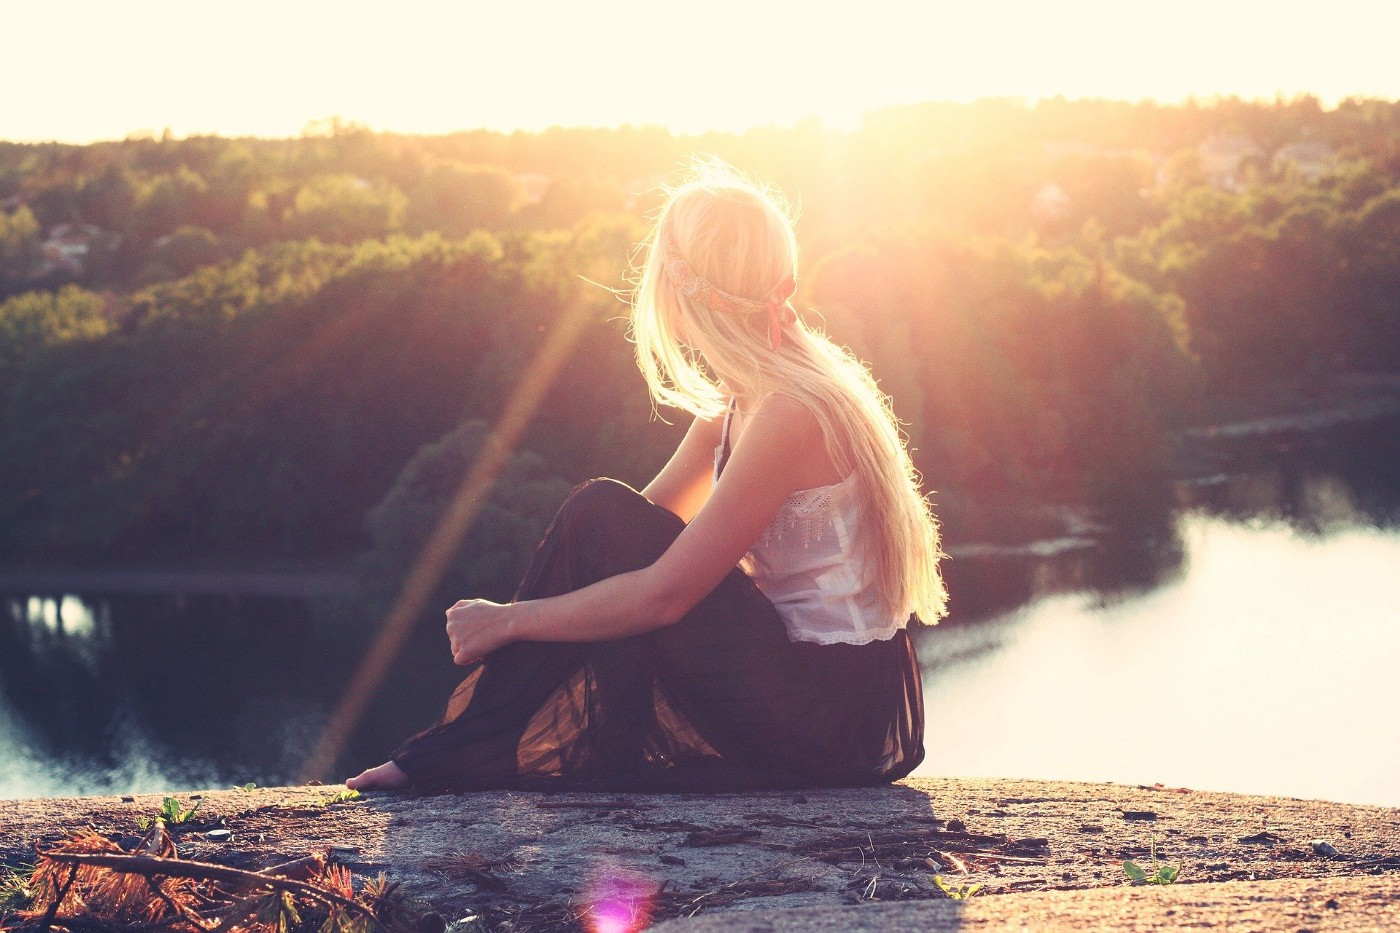 Woman looking opposite direction at the lake during sunrise